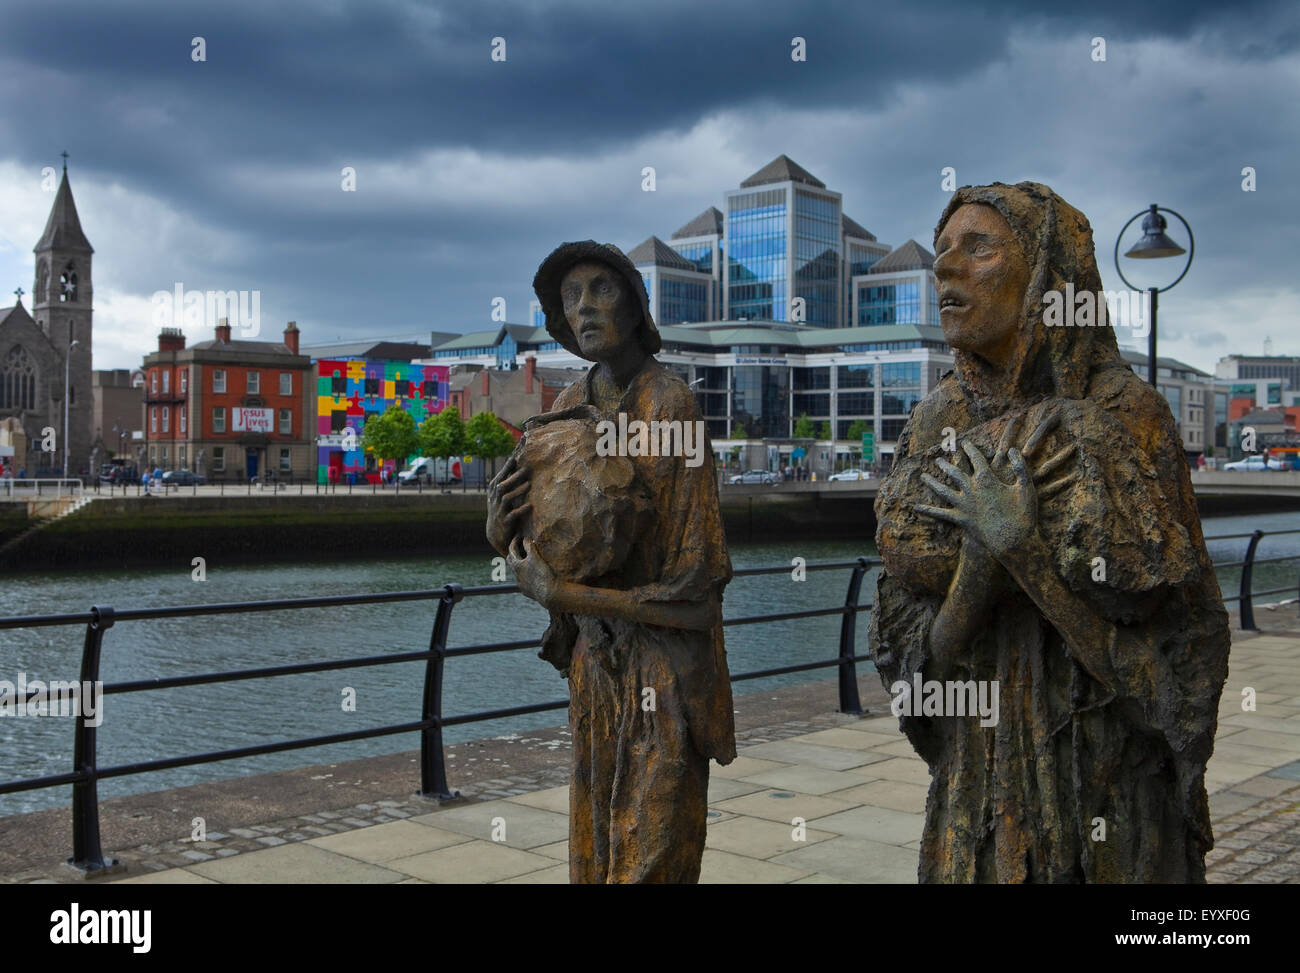 Liffey-side memorial to victims of the Irish Famine 1845 to 1852, by sculptor Rowan Gillespie, Customs House Quay, - Stock Image